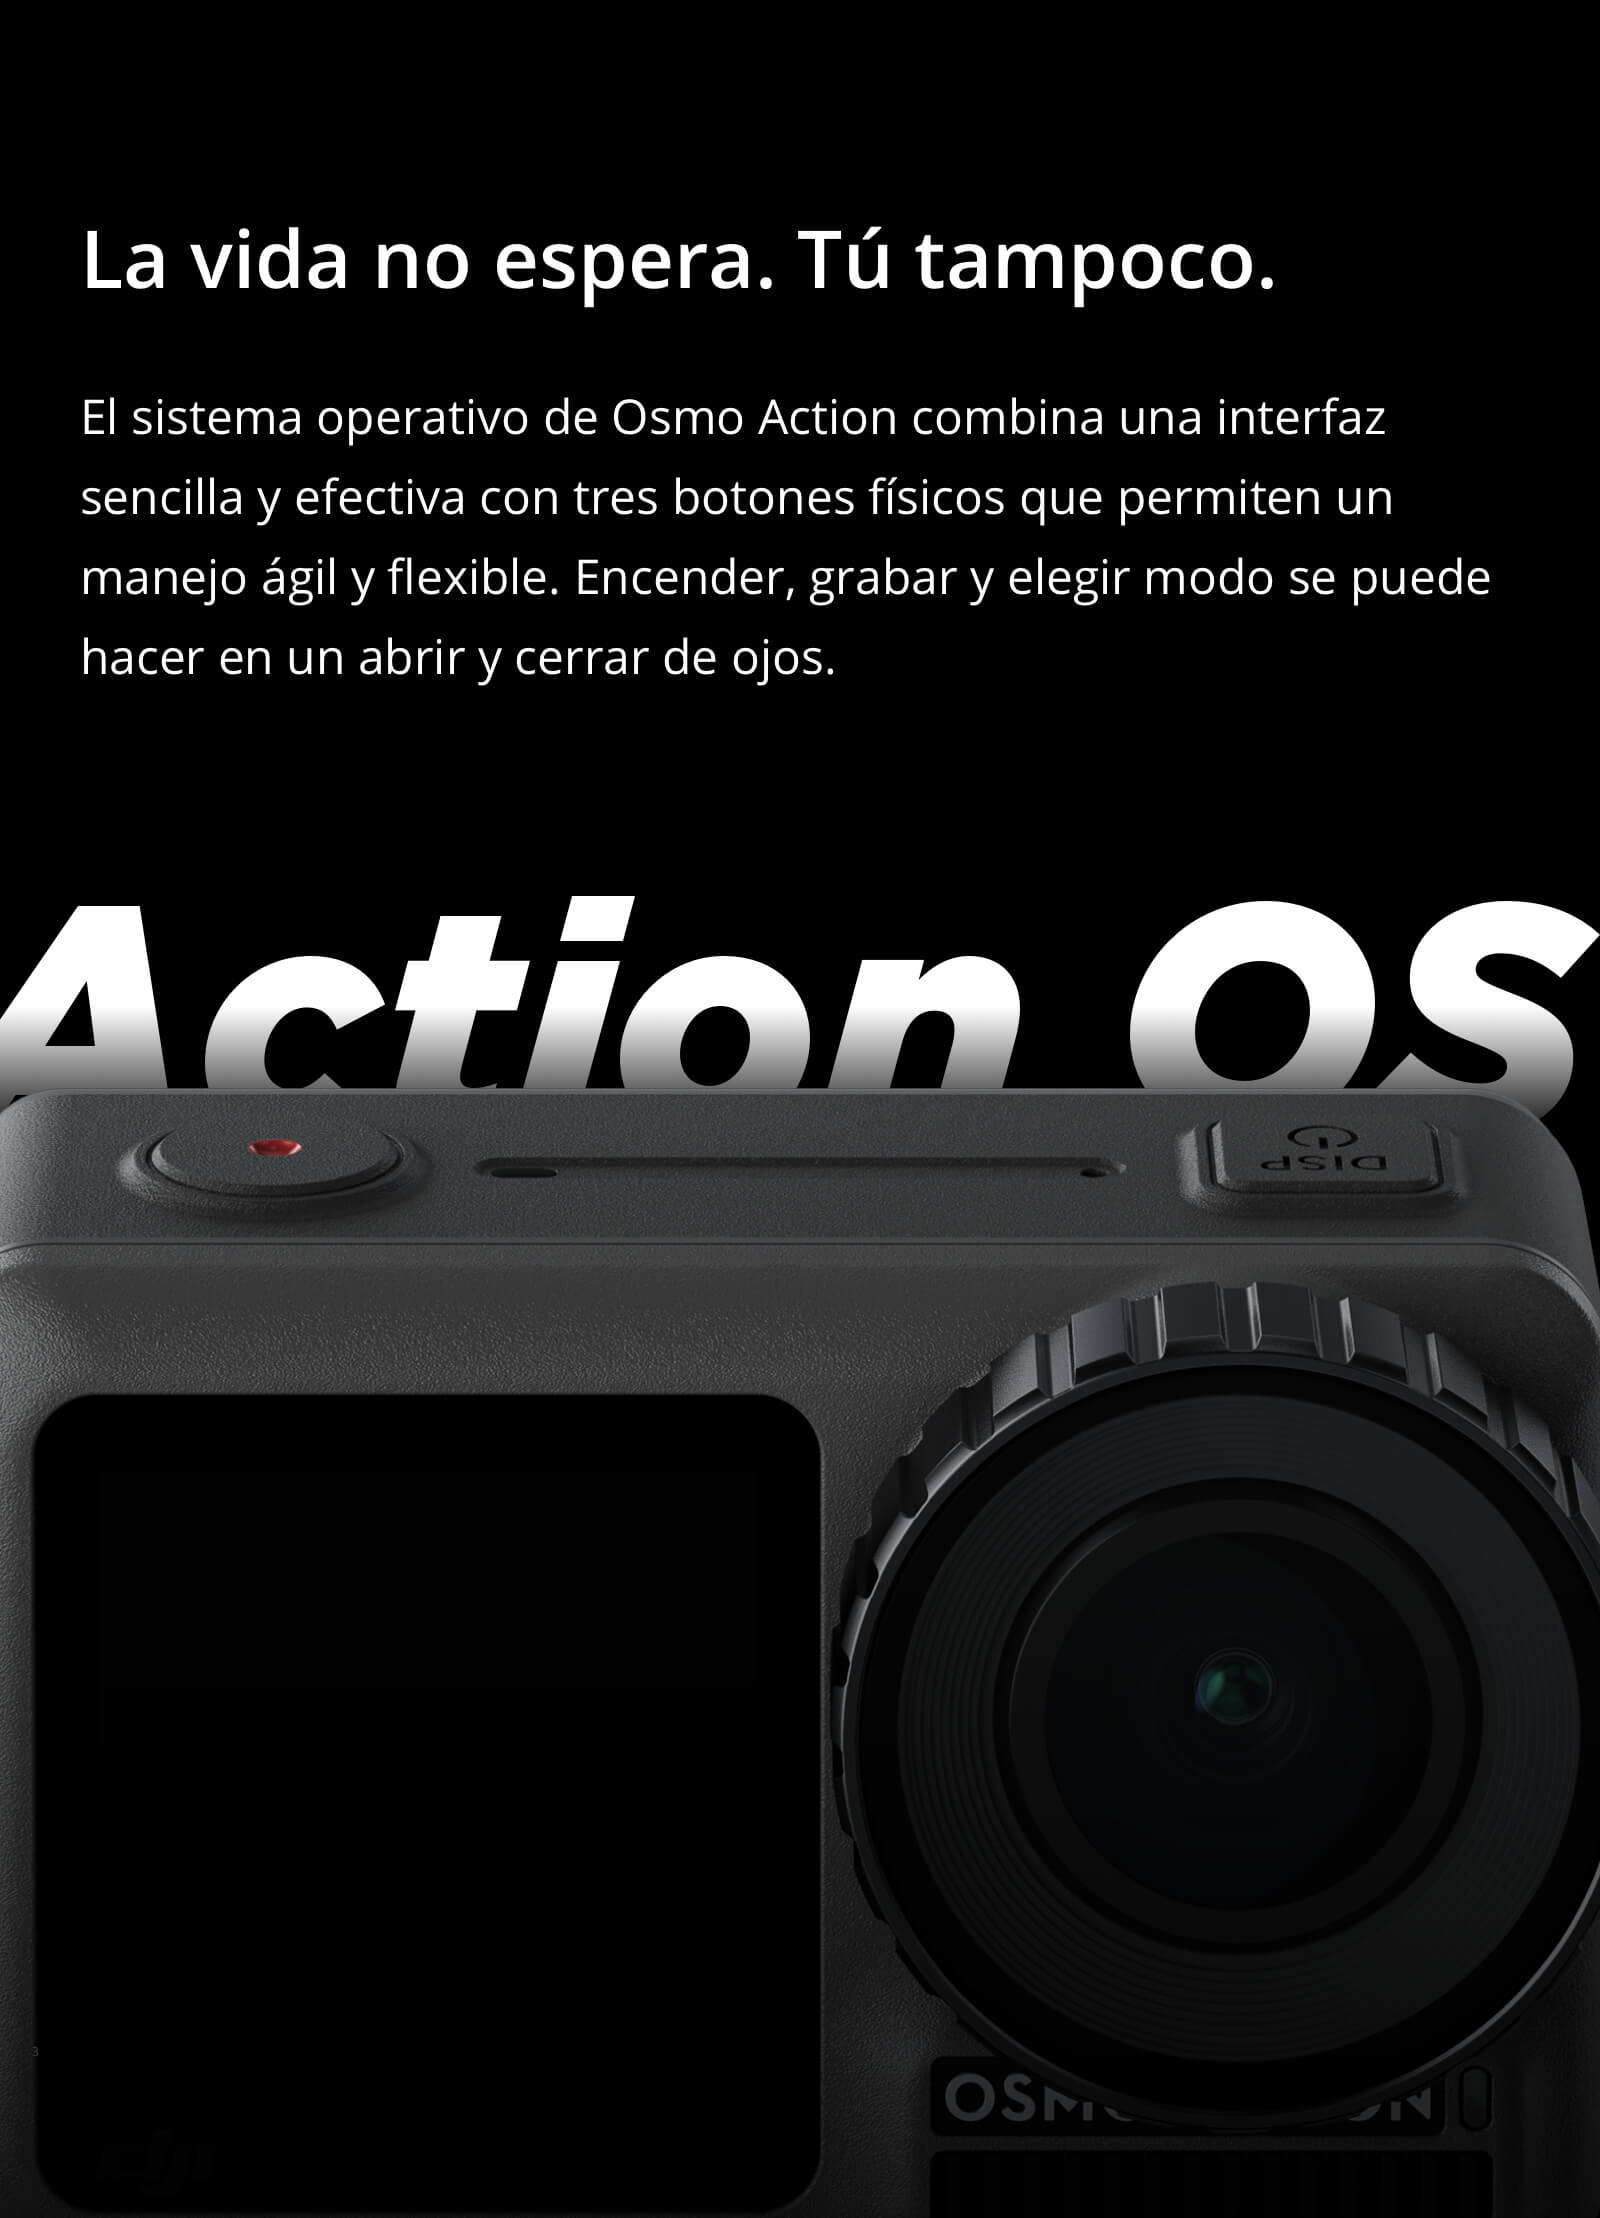 DJI_osmo_action_stockrc7